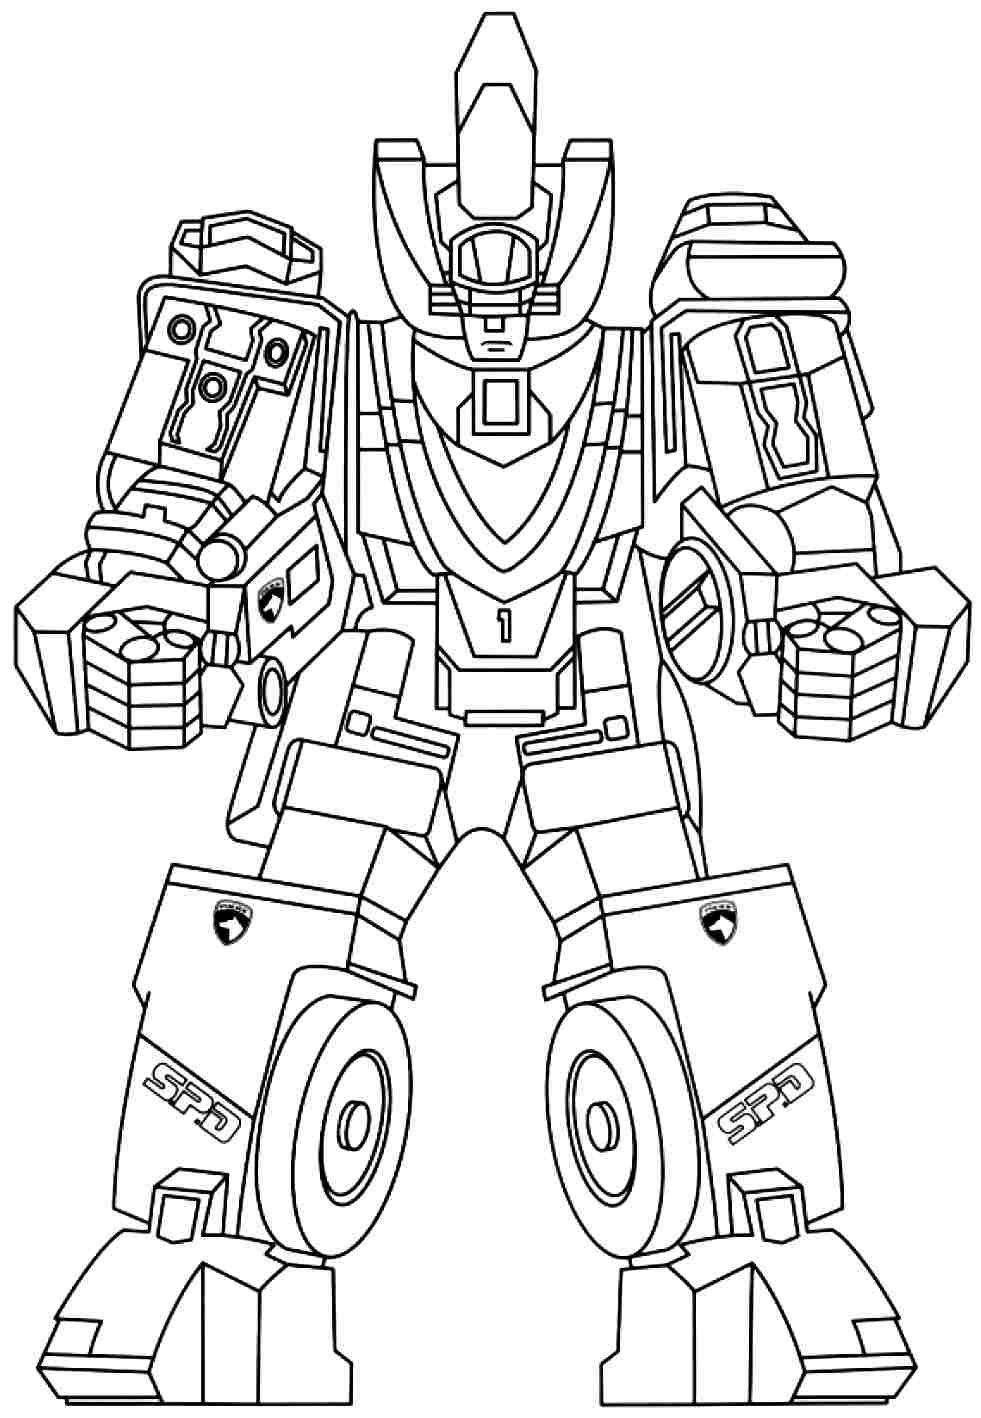 Print Full Size Image Power Rangers Colouring Pages Free For Kids & Girls